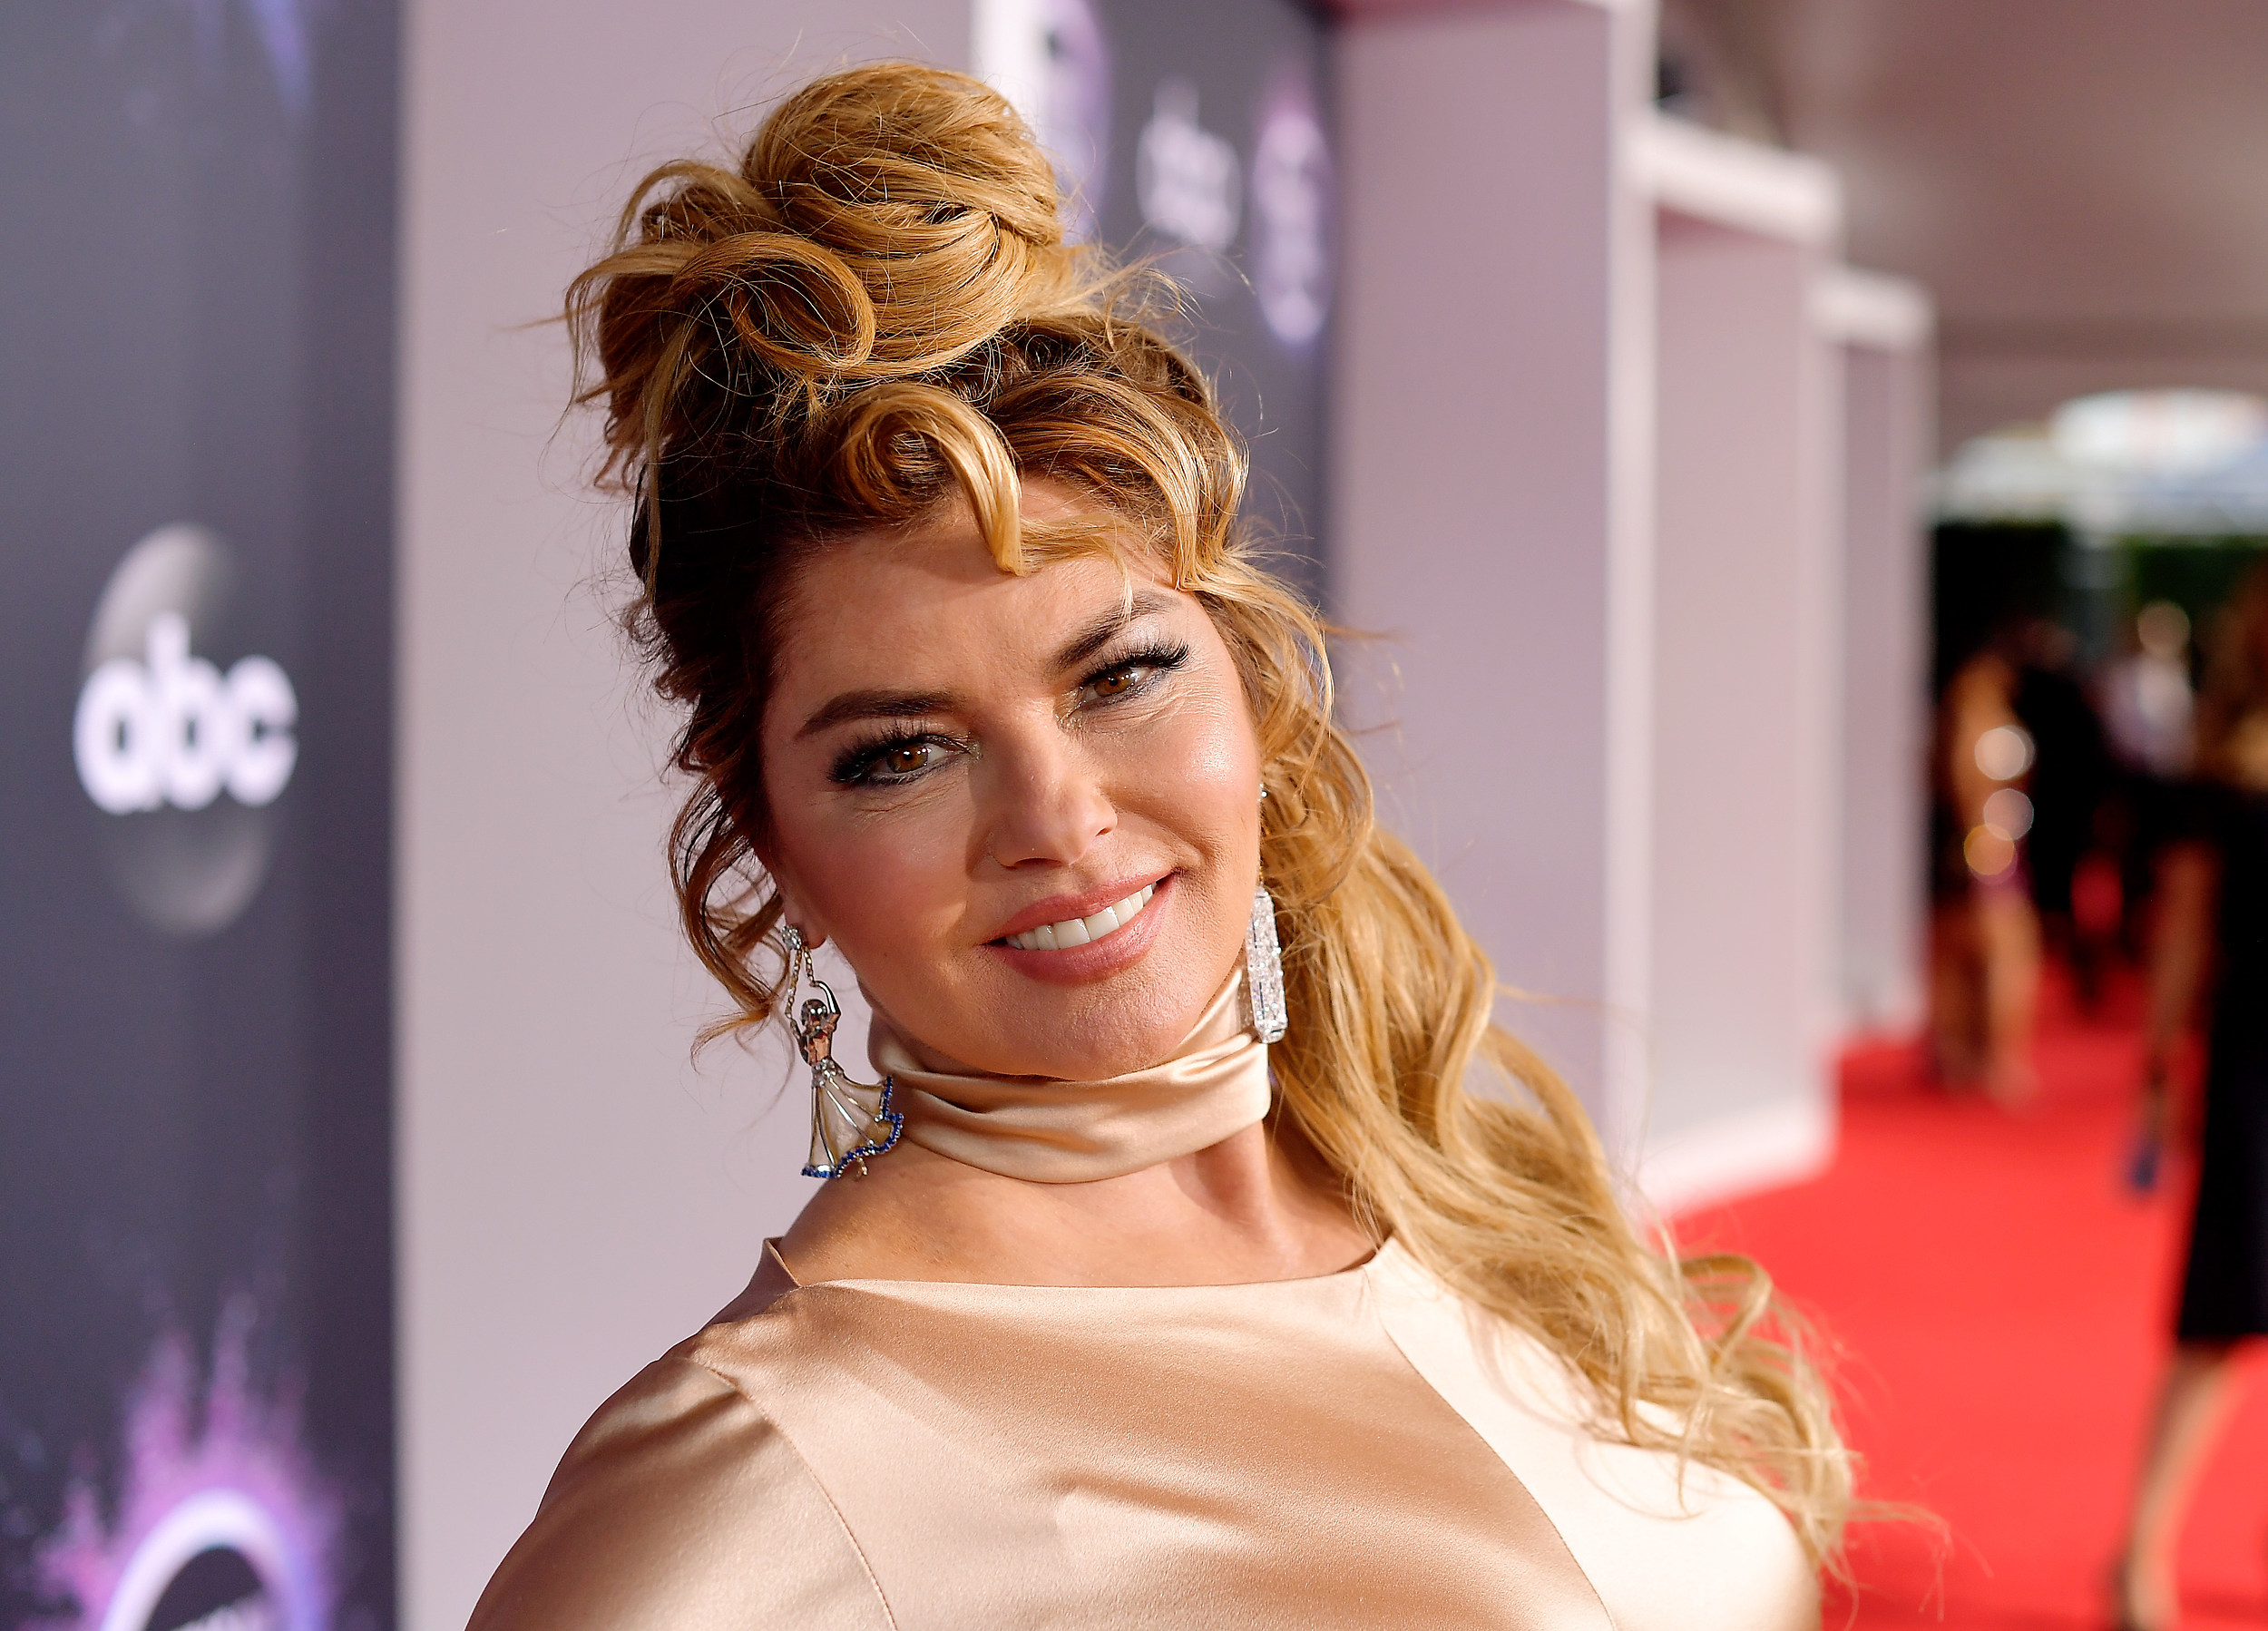 5 New Artists Shania Twain Fans Must Hear